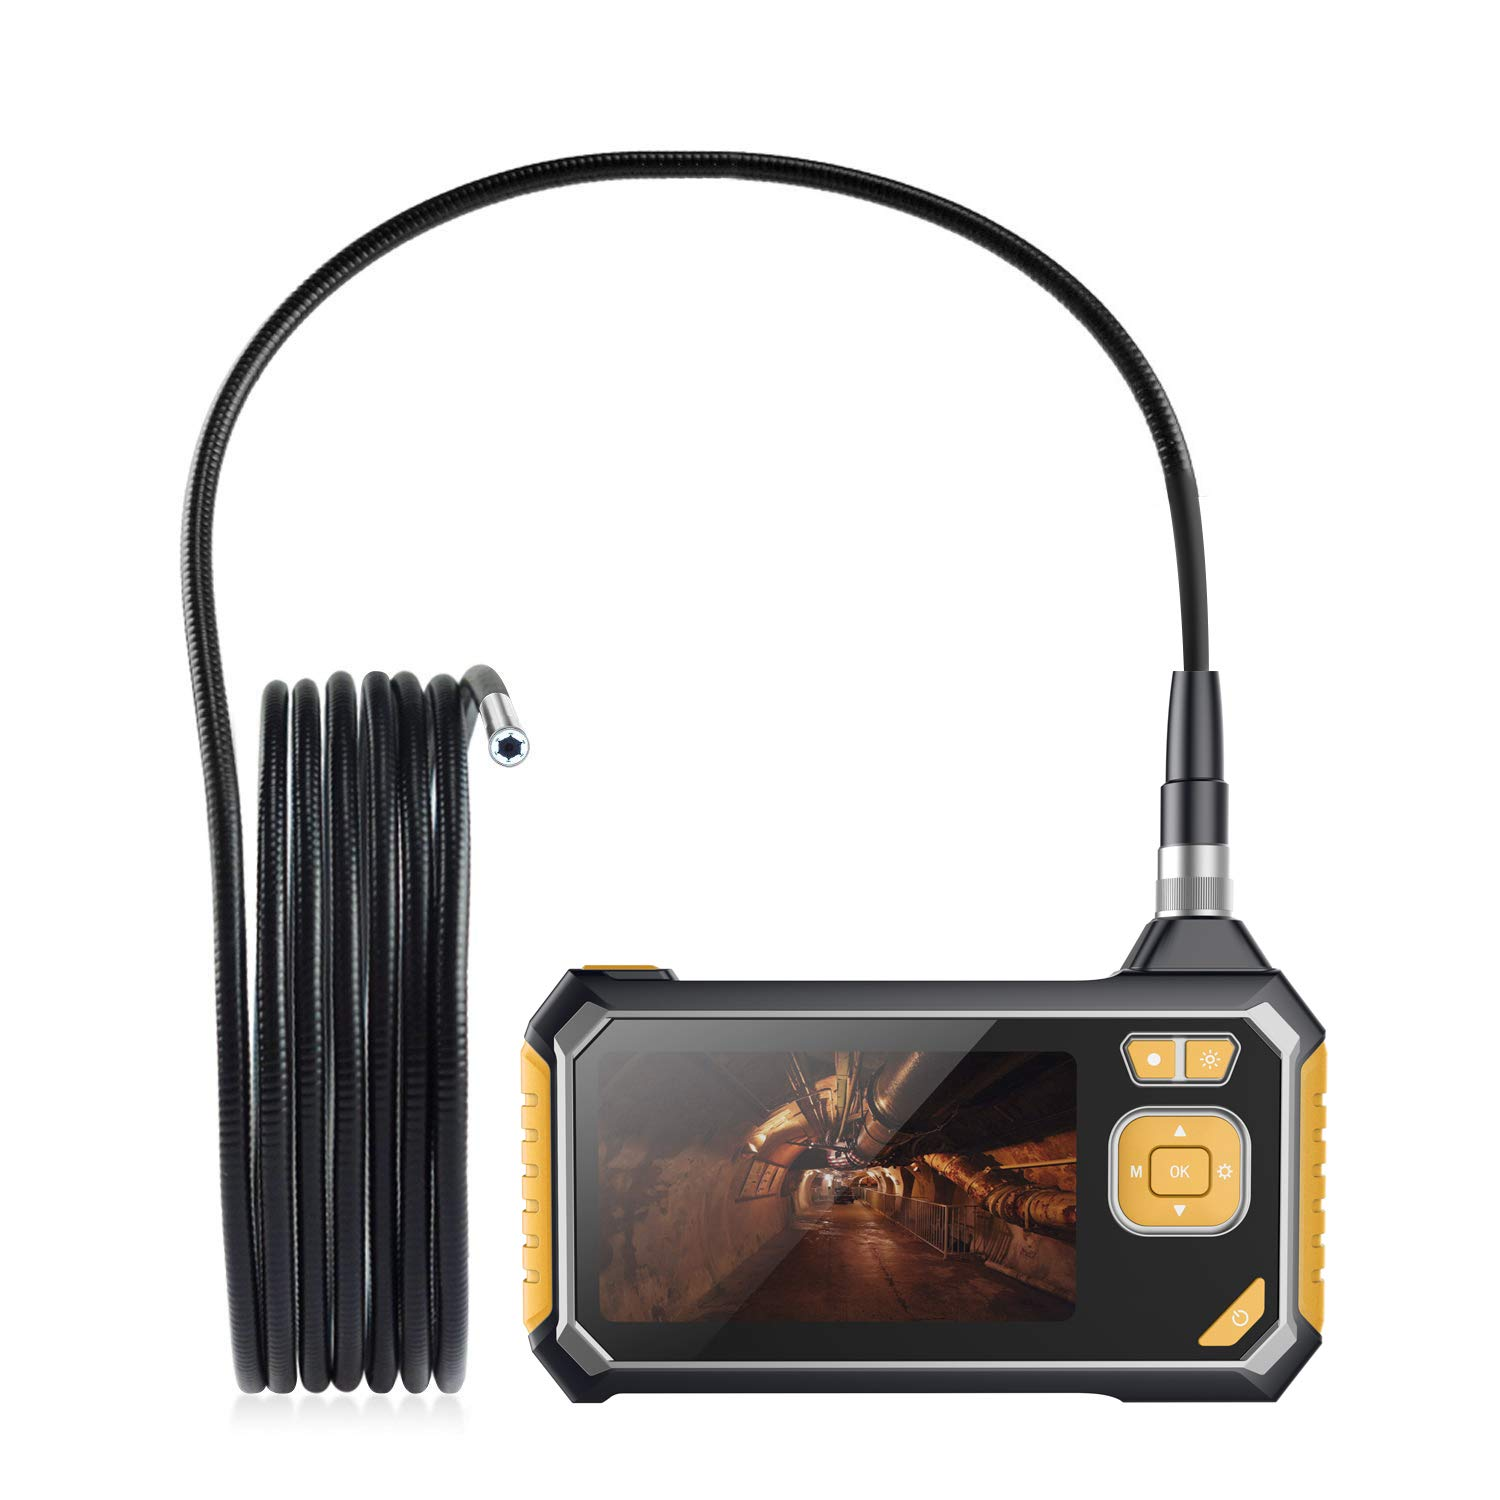 CSHope Industrial Endoscope, Inspection Borescope 1.18inch to 197inch Long Focal Length, 1080P HD Professional Snake Video Inspection Camera, 4.3inch Digital LCD Screen and 8mm Waterproof Cable-9.8ft